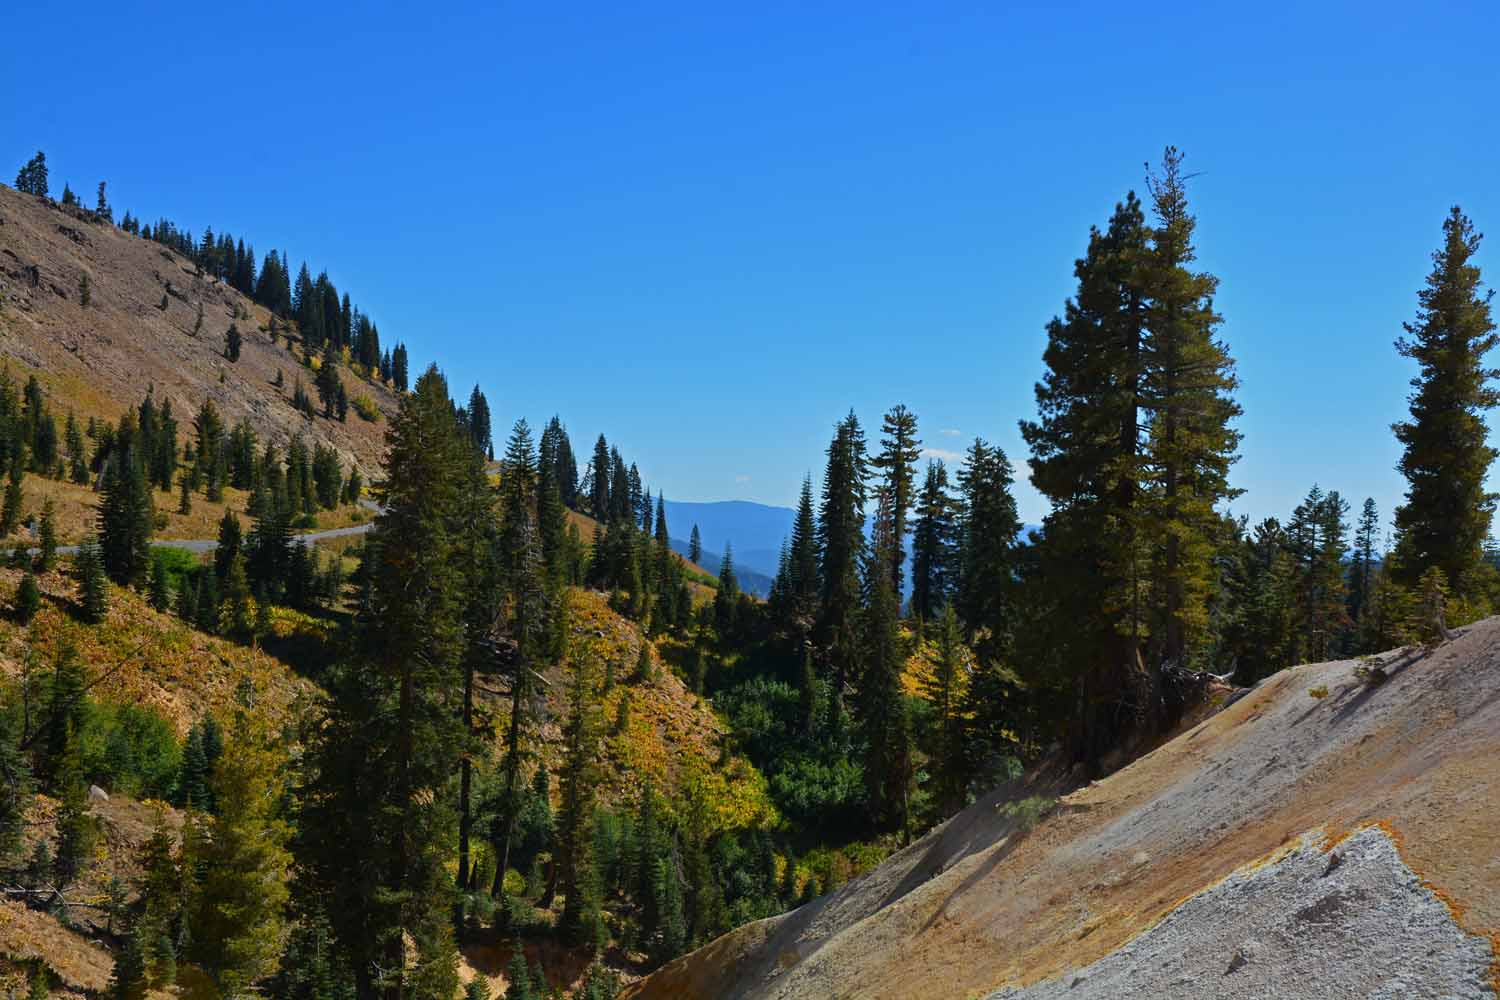 As you come down off the mountain things got greener at Lassen.